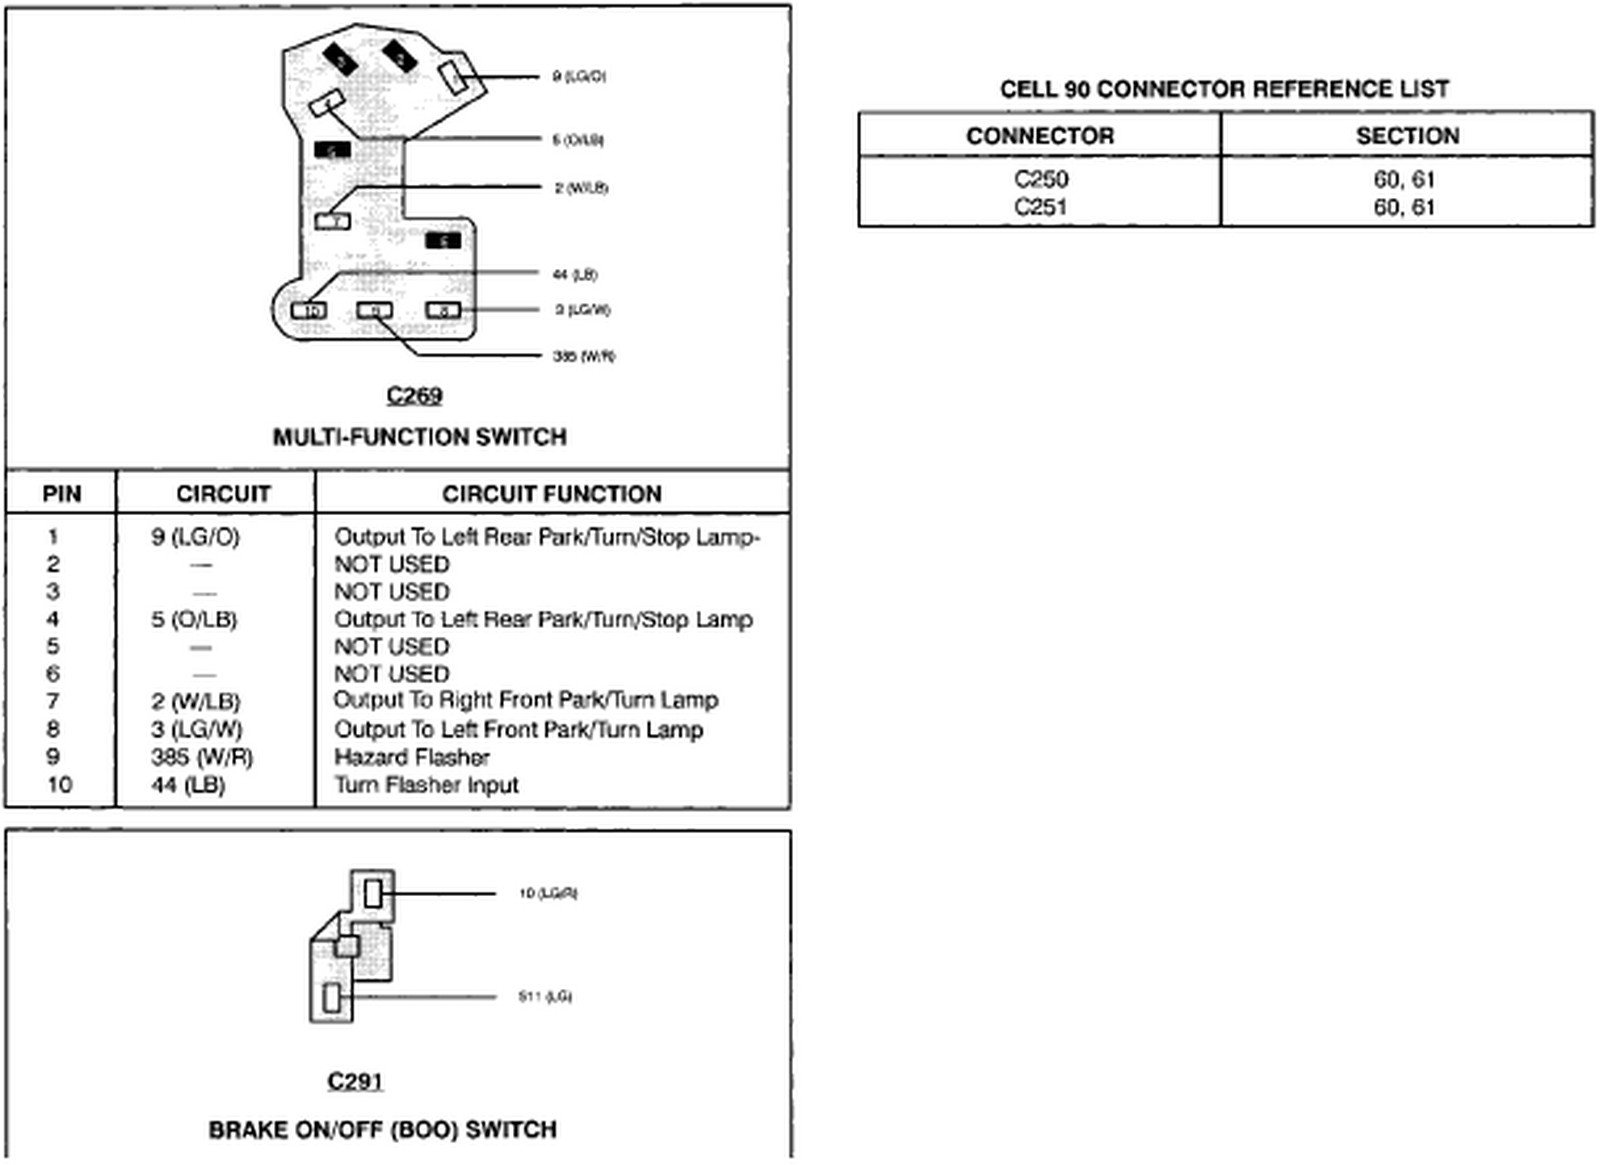 fuse box diagram likewise ford aerostar wiring diagram on 94 rh vagabondtraveller co